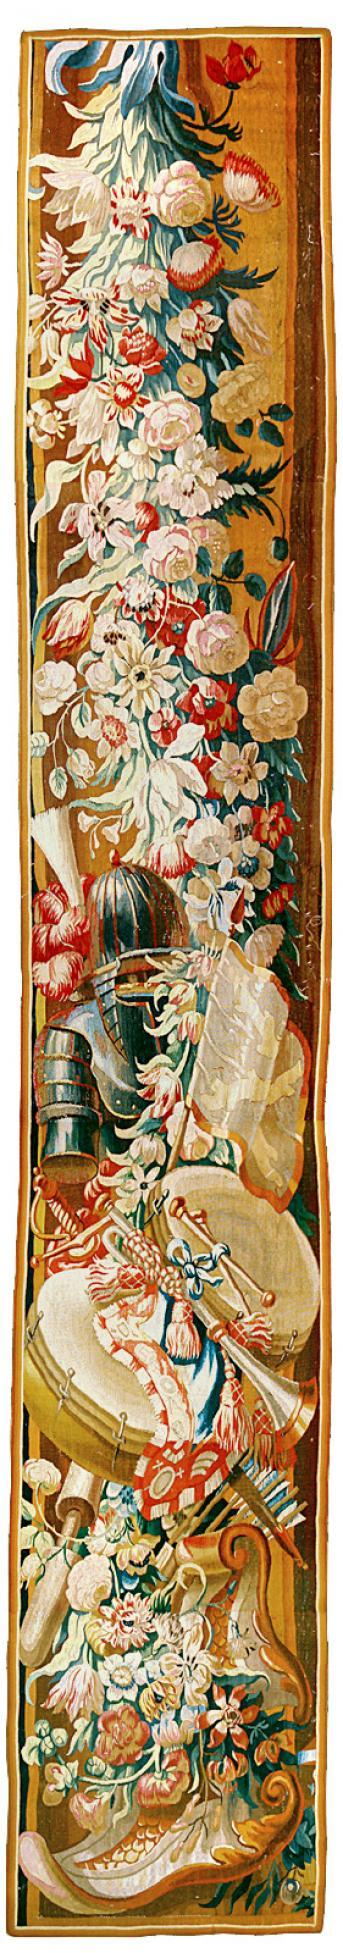 Baroque Tapestry Border Panel